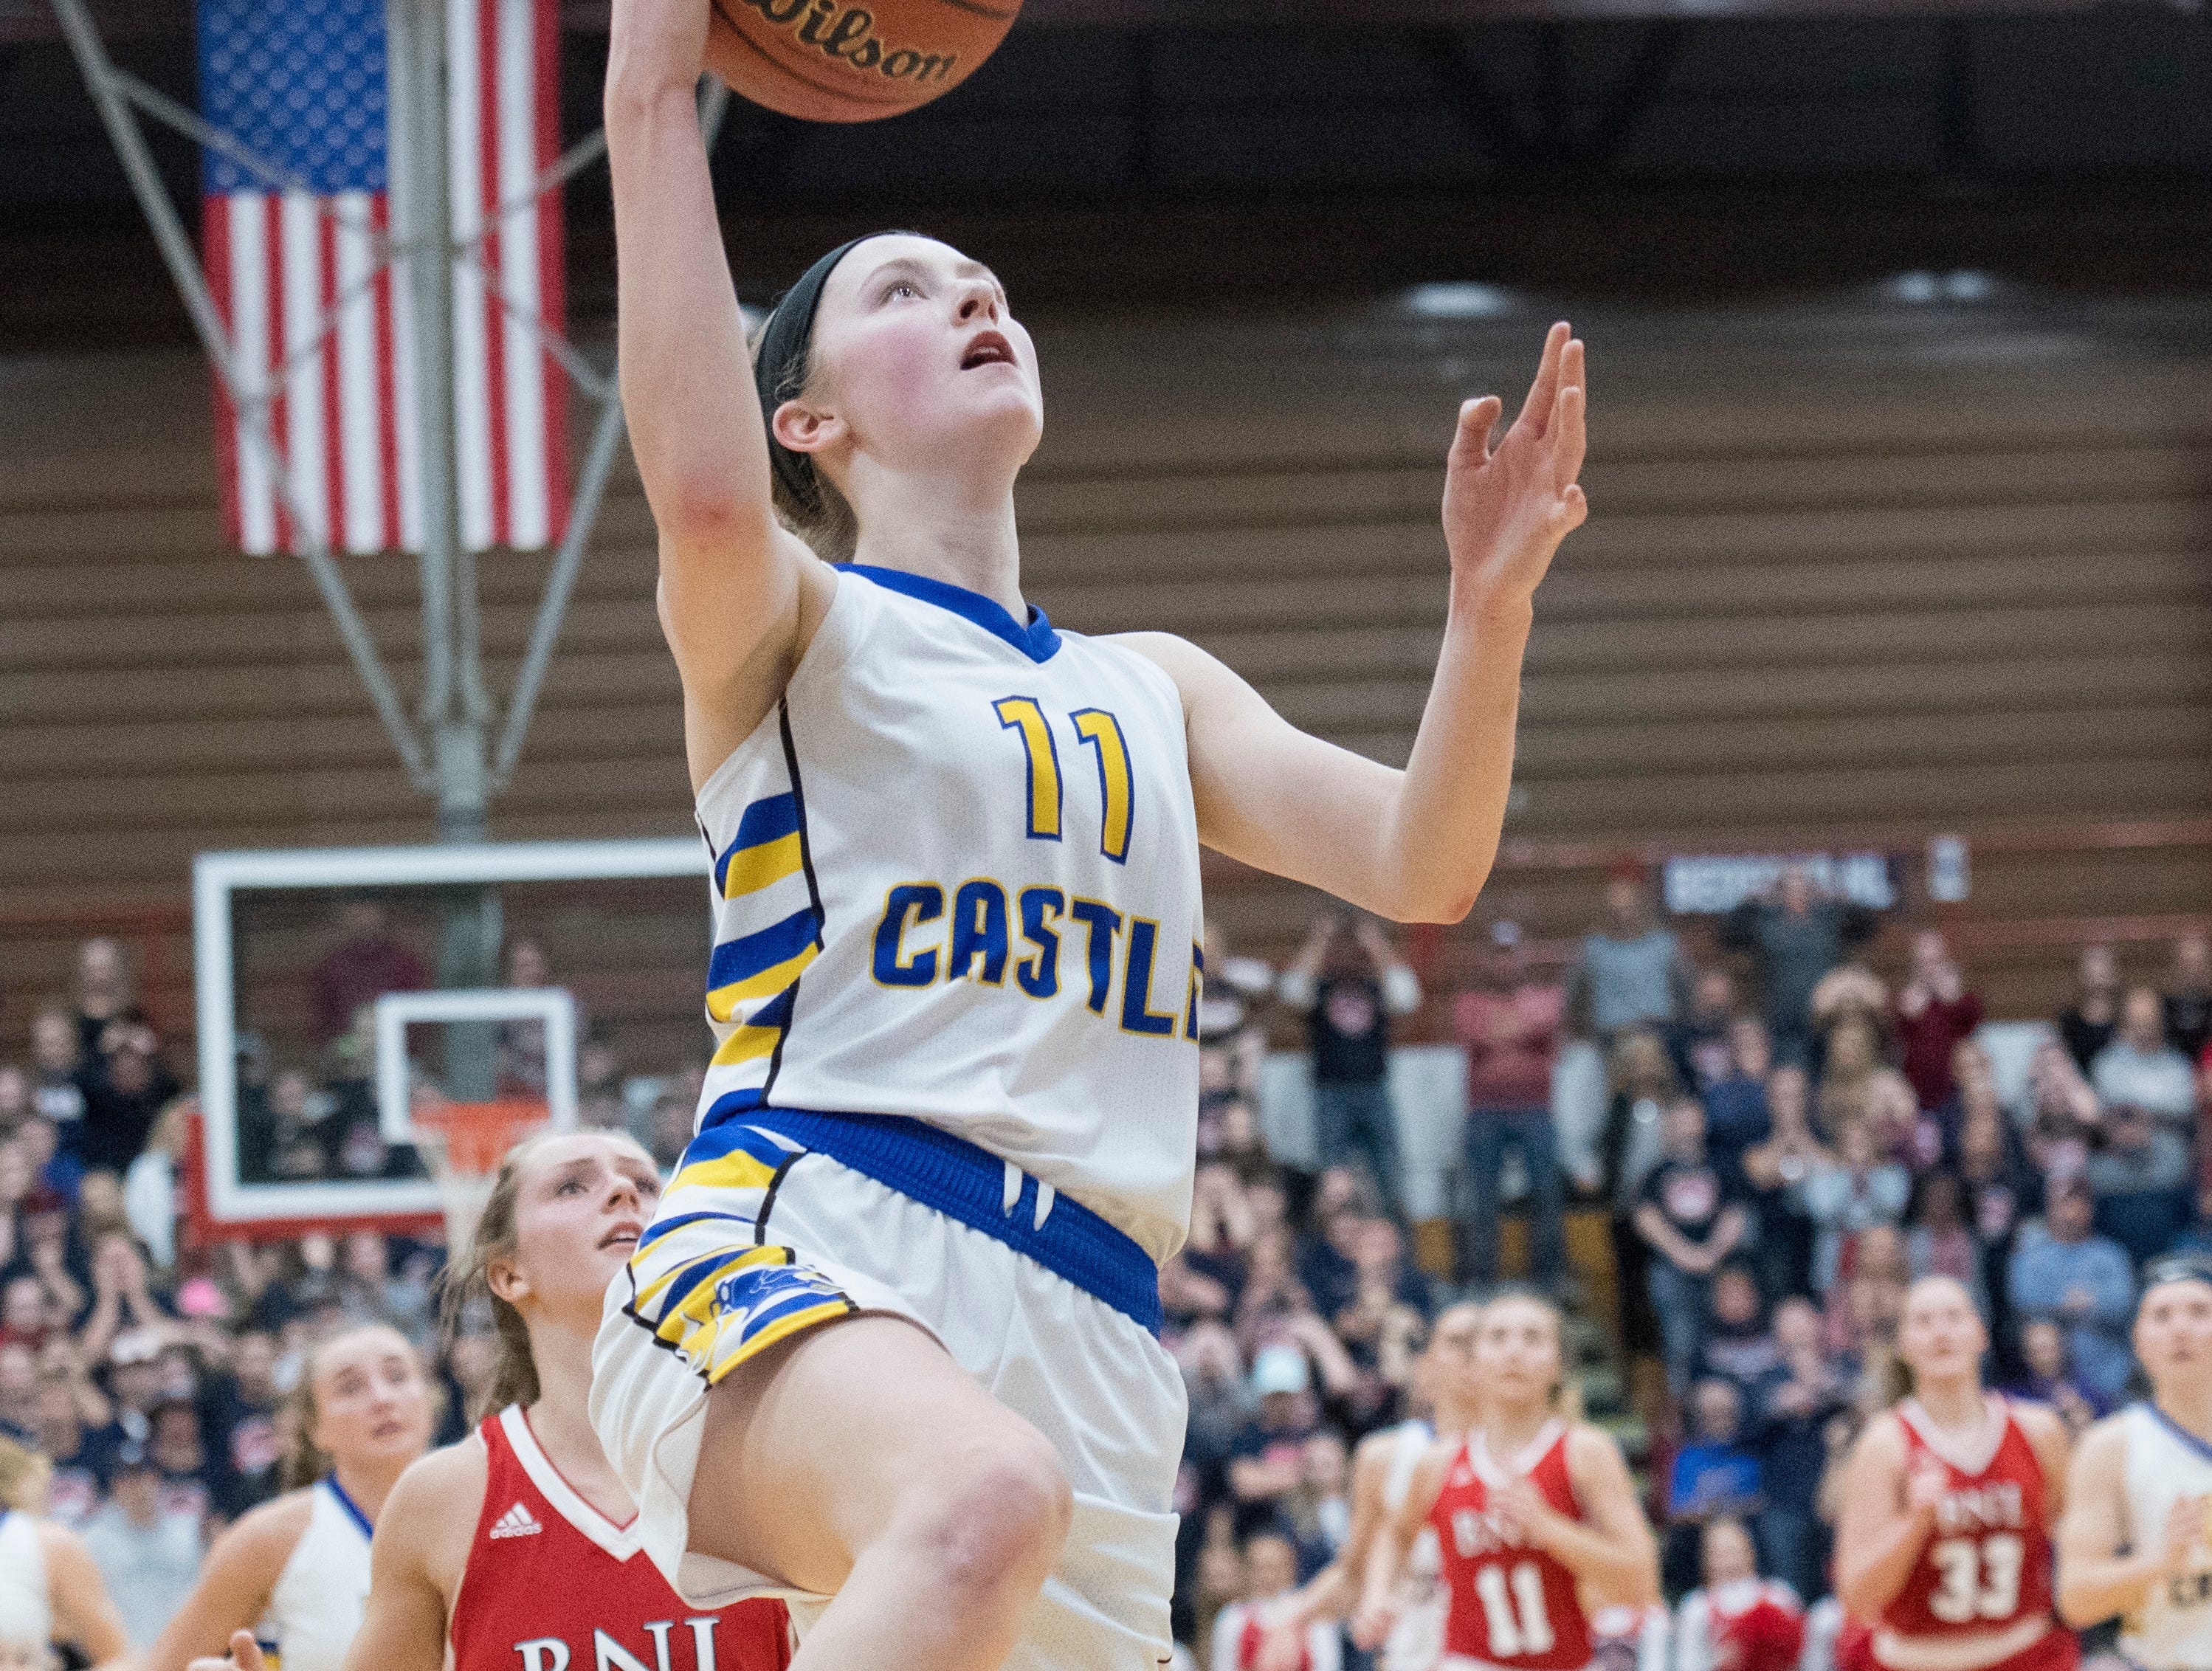 Castle's Carly Harpenau (11) takes a shot during the IHSAA Girls Basketball Class 4A Regional Championship game against the Bedford North Lawrence Lady Stars at the Stars Field House in Bedford, Ind. Saturday, Feb. 9, 2019.